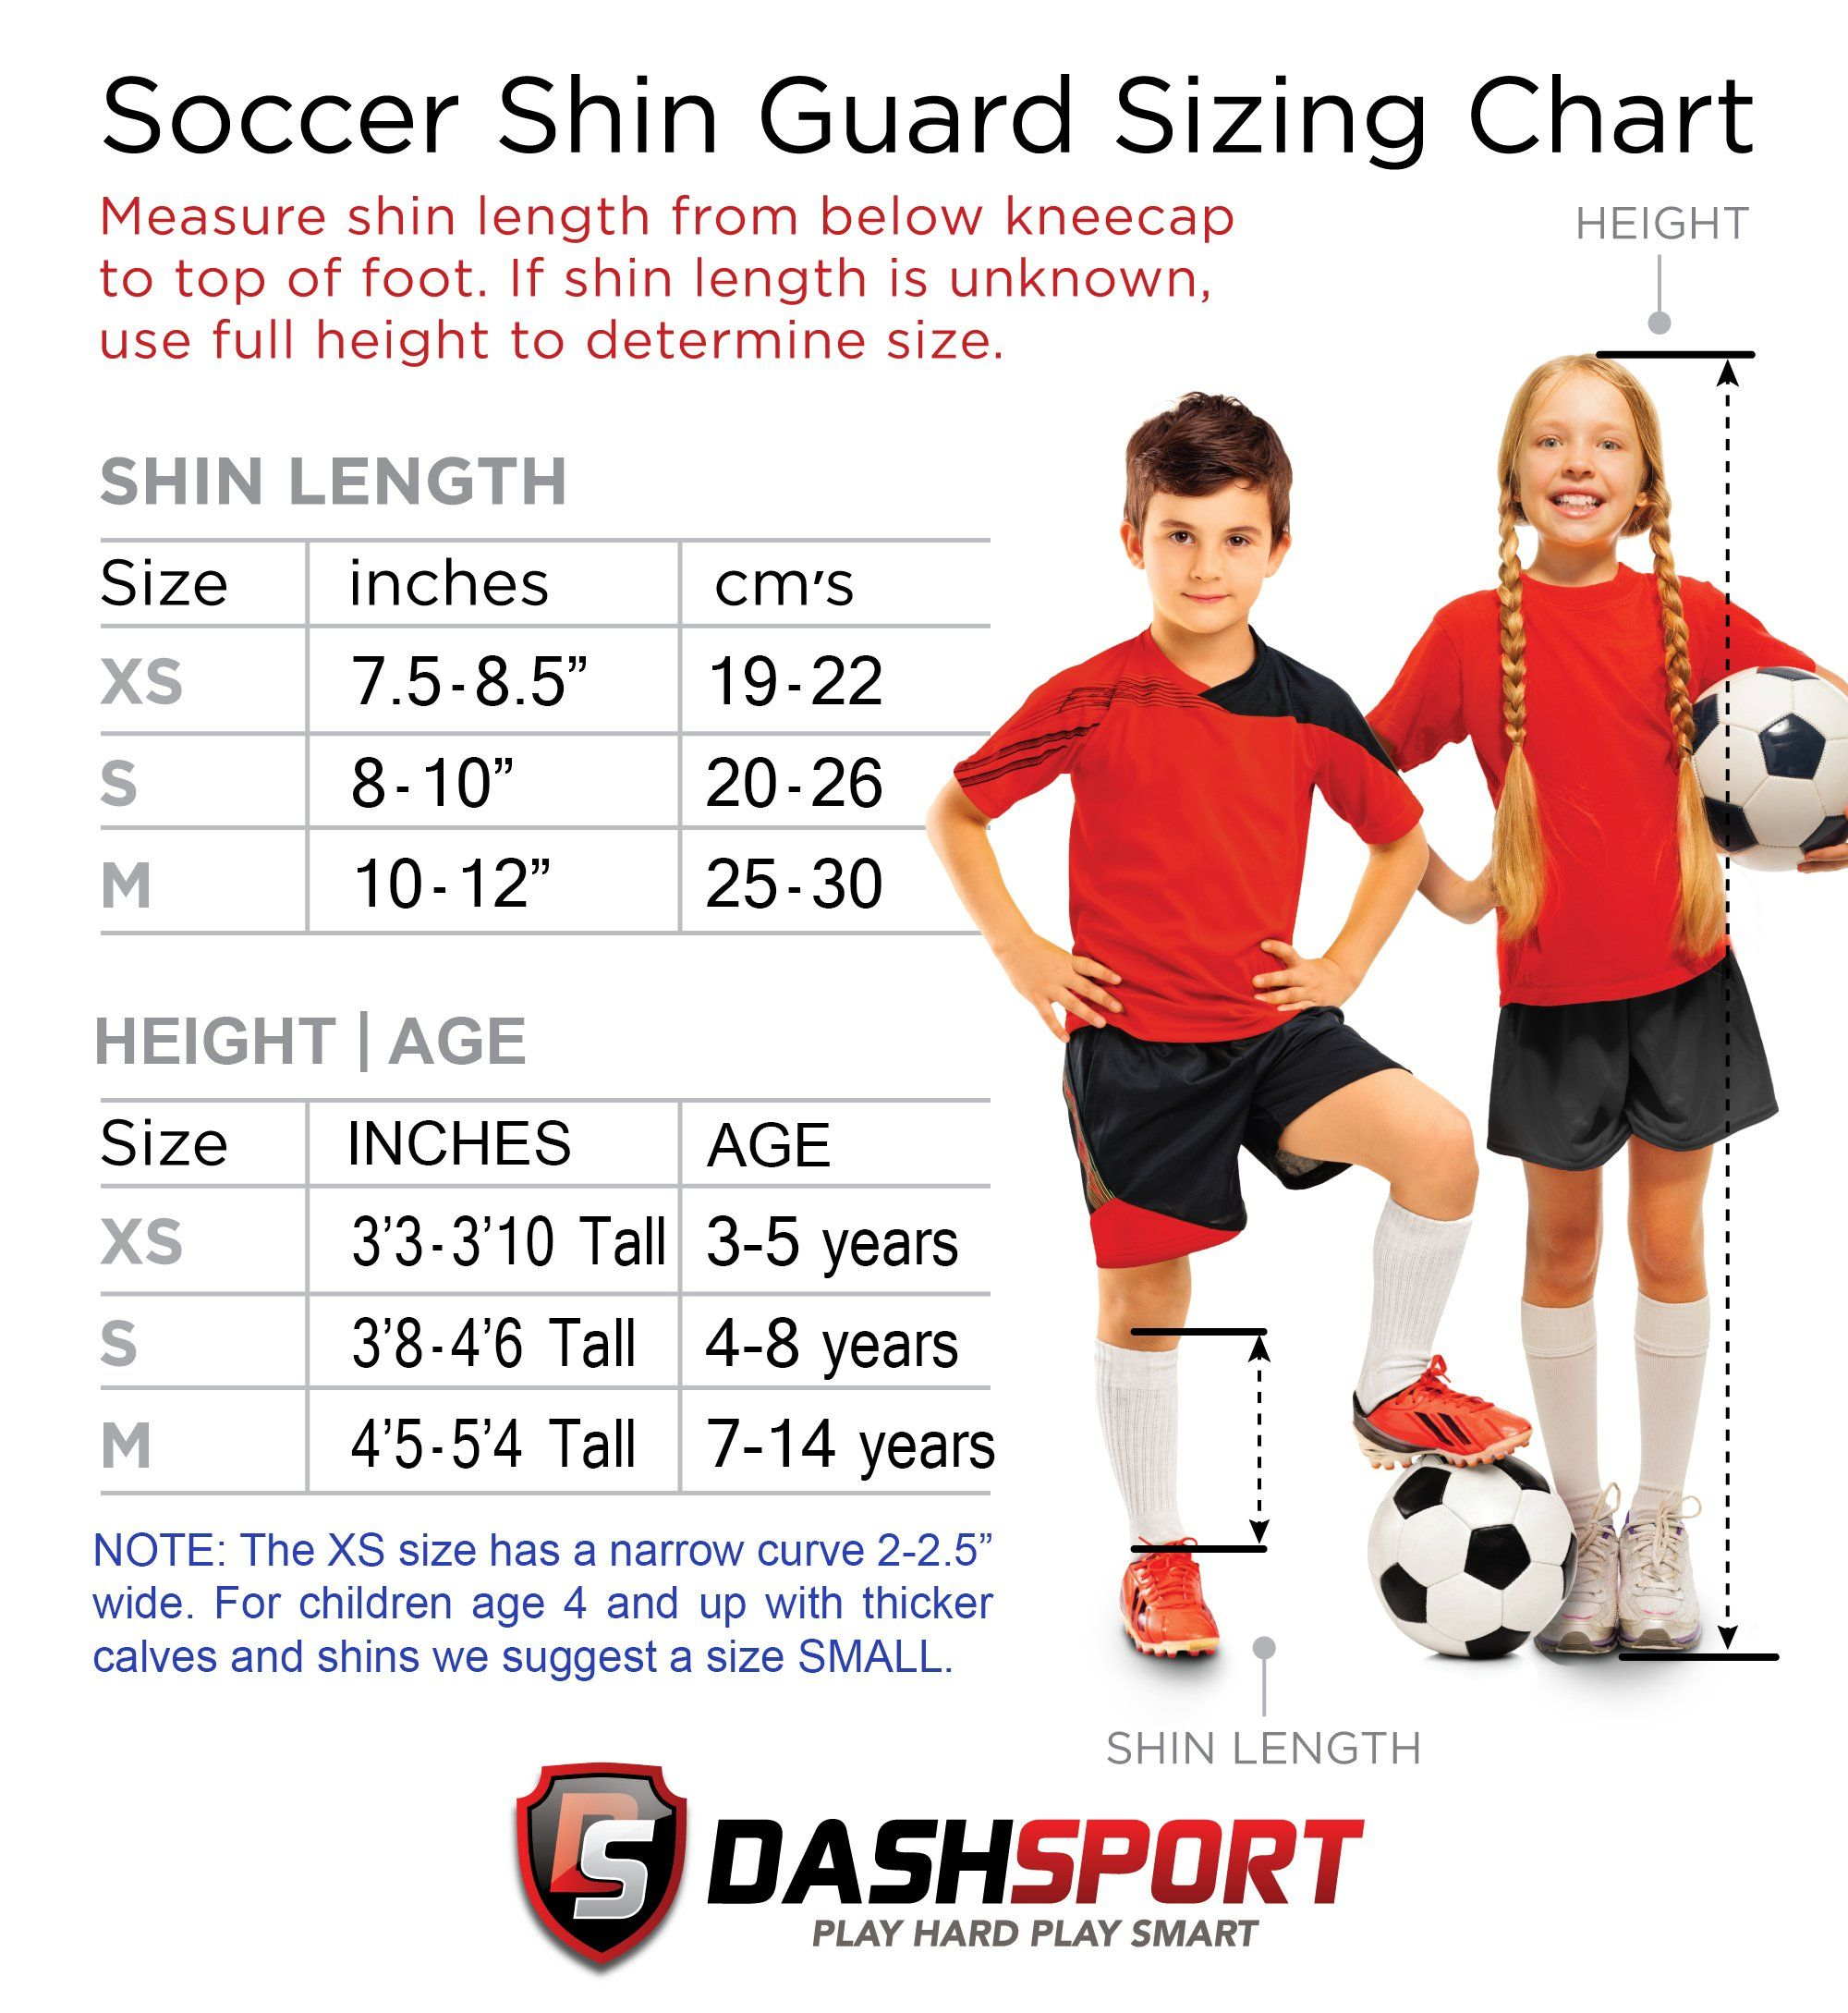 Soccer Shin Guards Youth Sizes By Dashsport Best Kids Soccer Equipment With Ankle Sleeves Great For Boys And Girl Soccer Shin Guards Kids Soccer Shin Guards